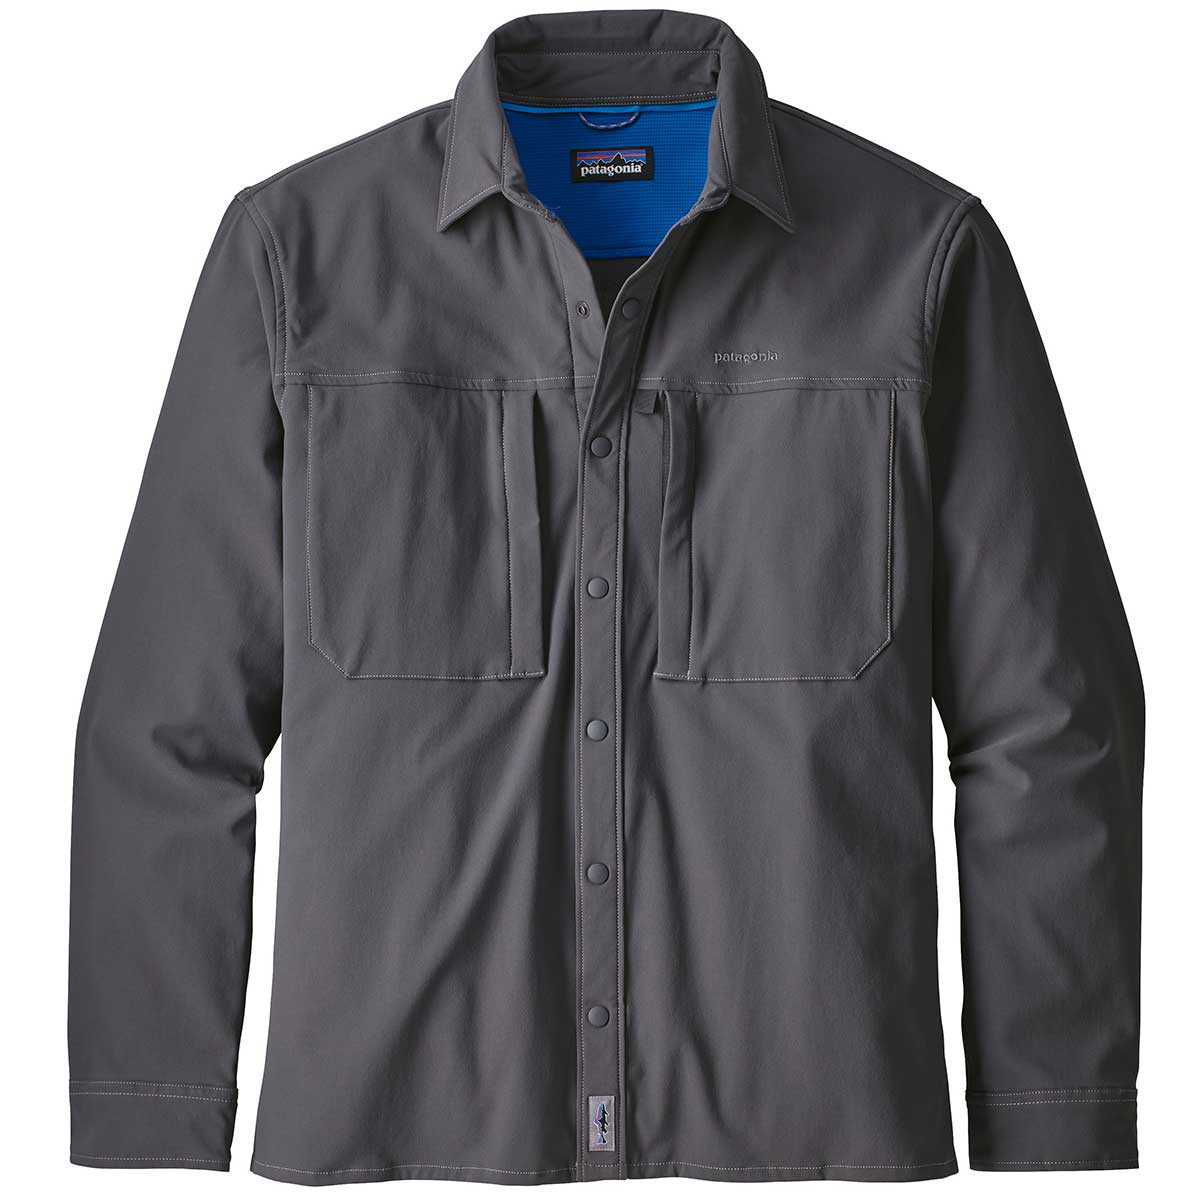 Patagonia men's Snap-Dry Long Sleeve Shirt in Forge Grey front view